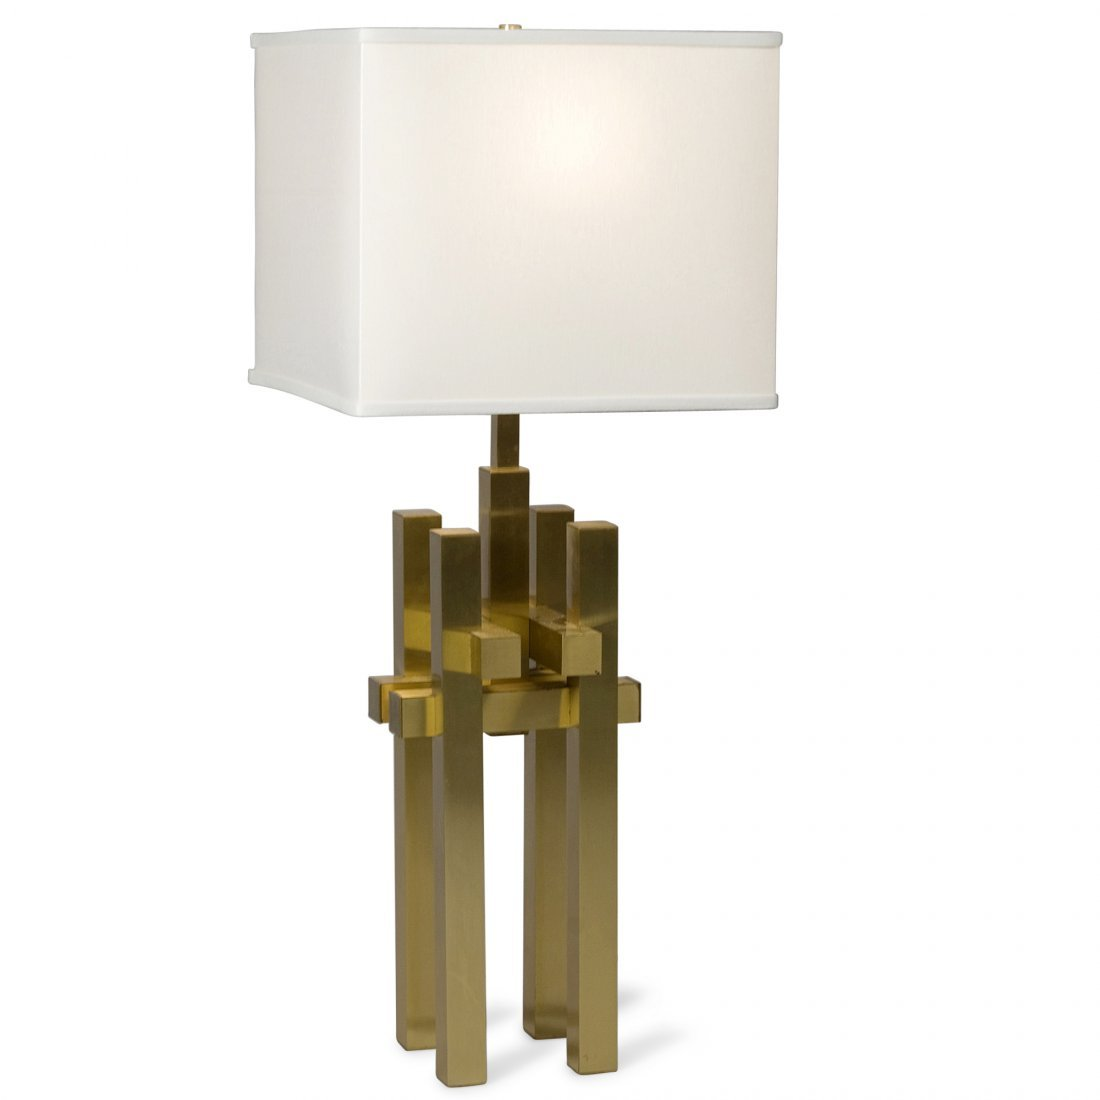 Sciolari Sculptural Table Lamp